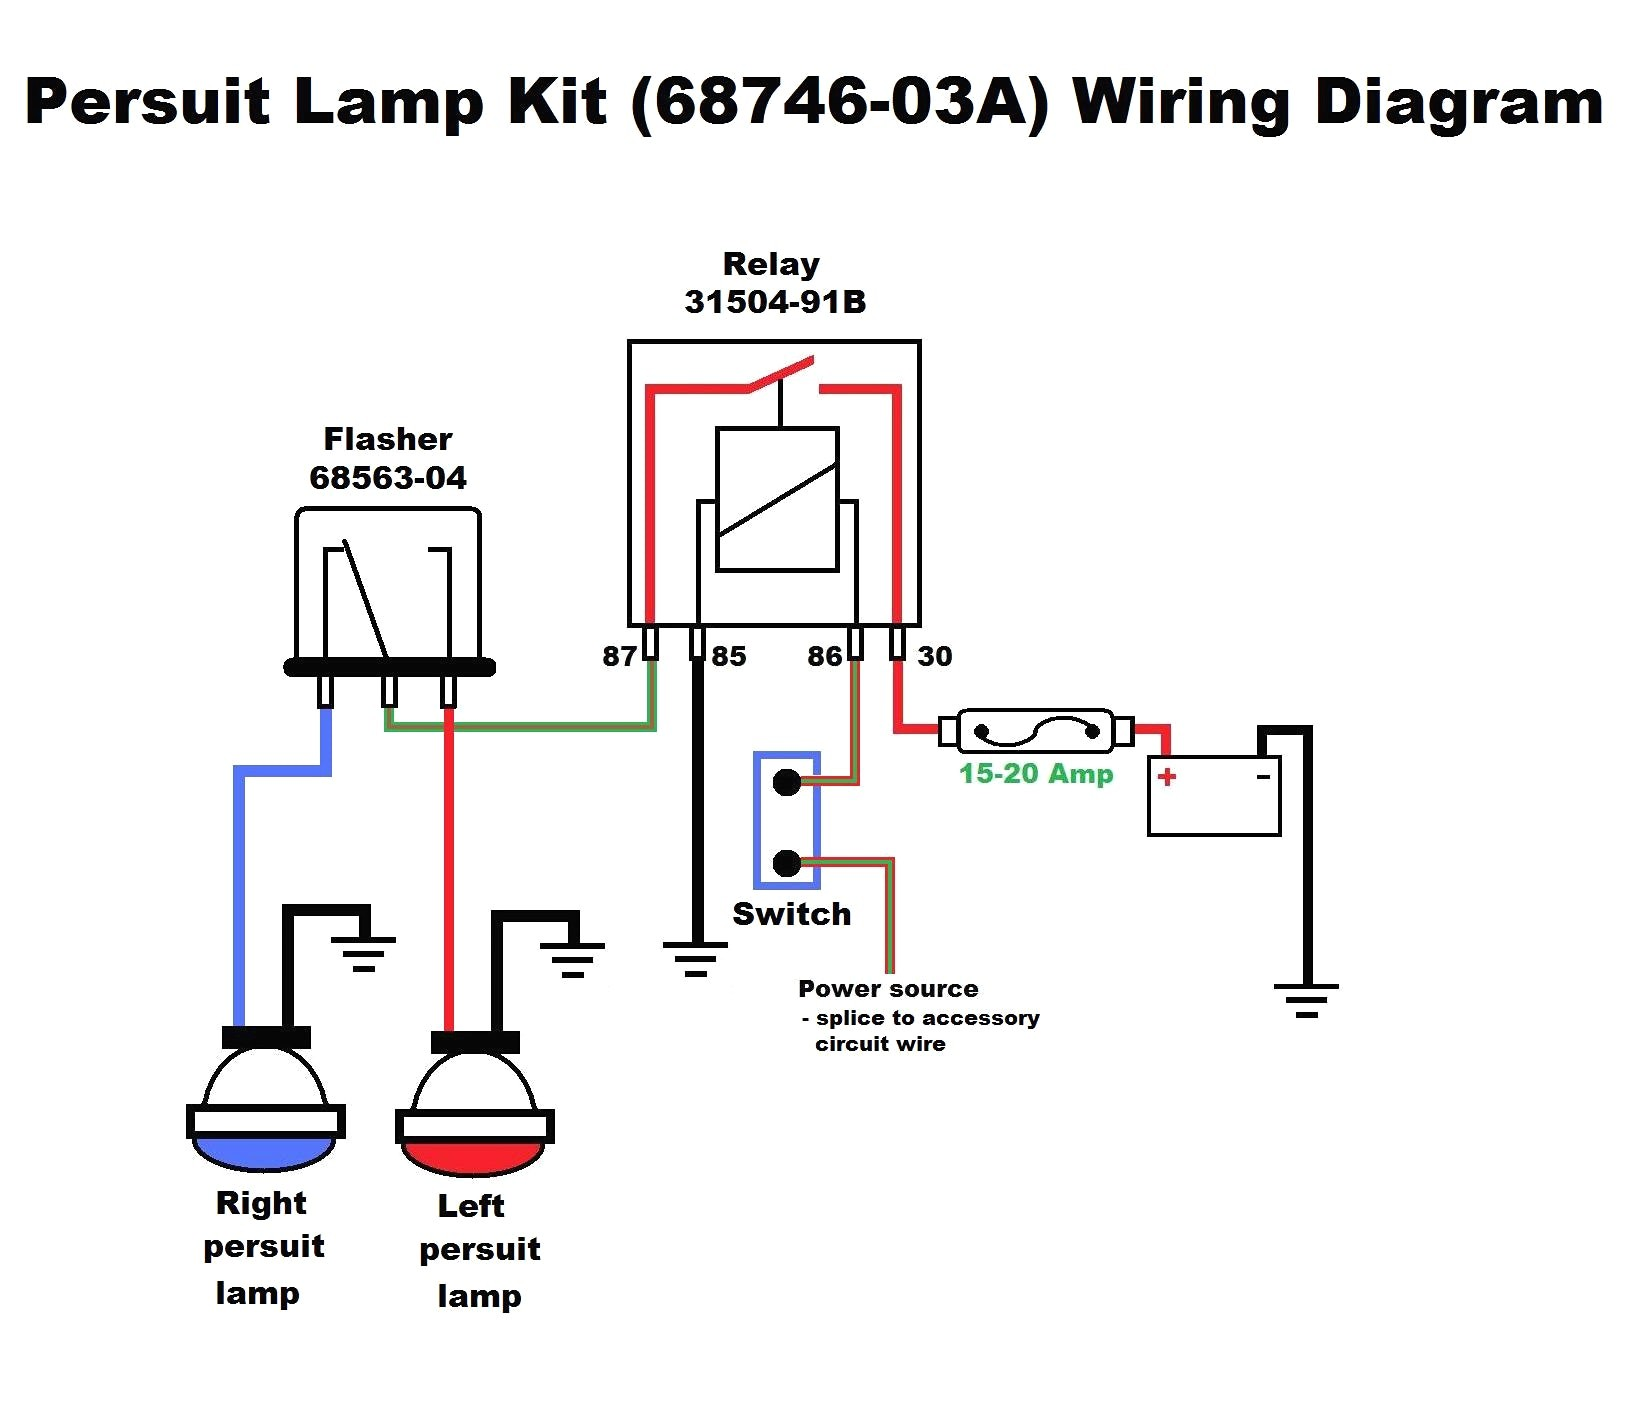 hazard relay wiring diagram for motorcycle schematic wiring diagrams Pump Switch Wiring motorcycle turn signal flasher wiring diagram wiring library safety relay wiring diagram hazard relay wiring diagram for motorcycle